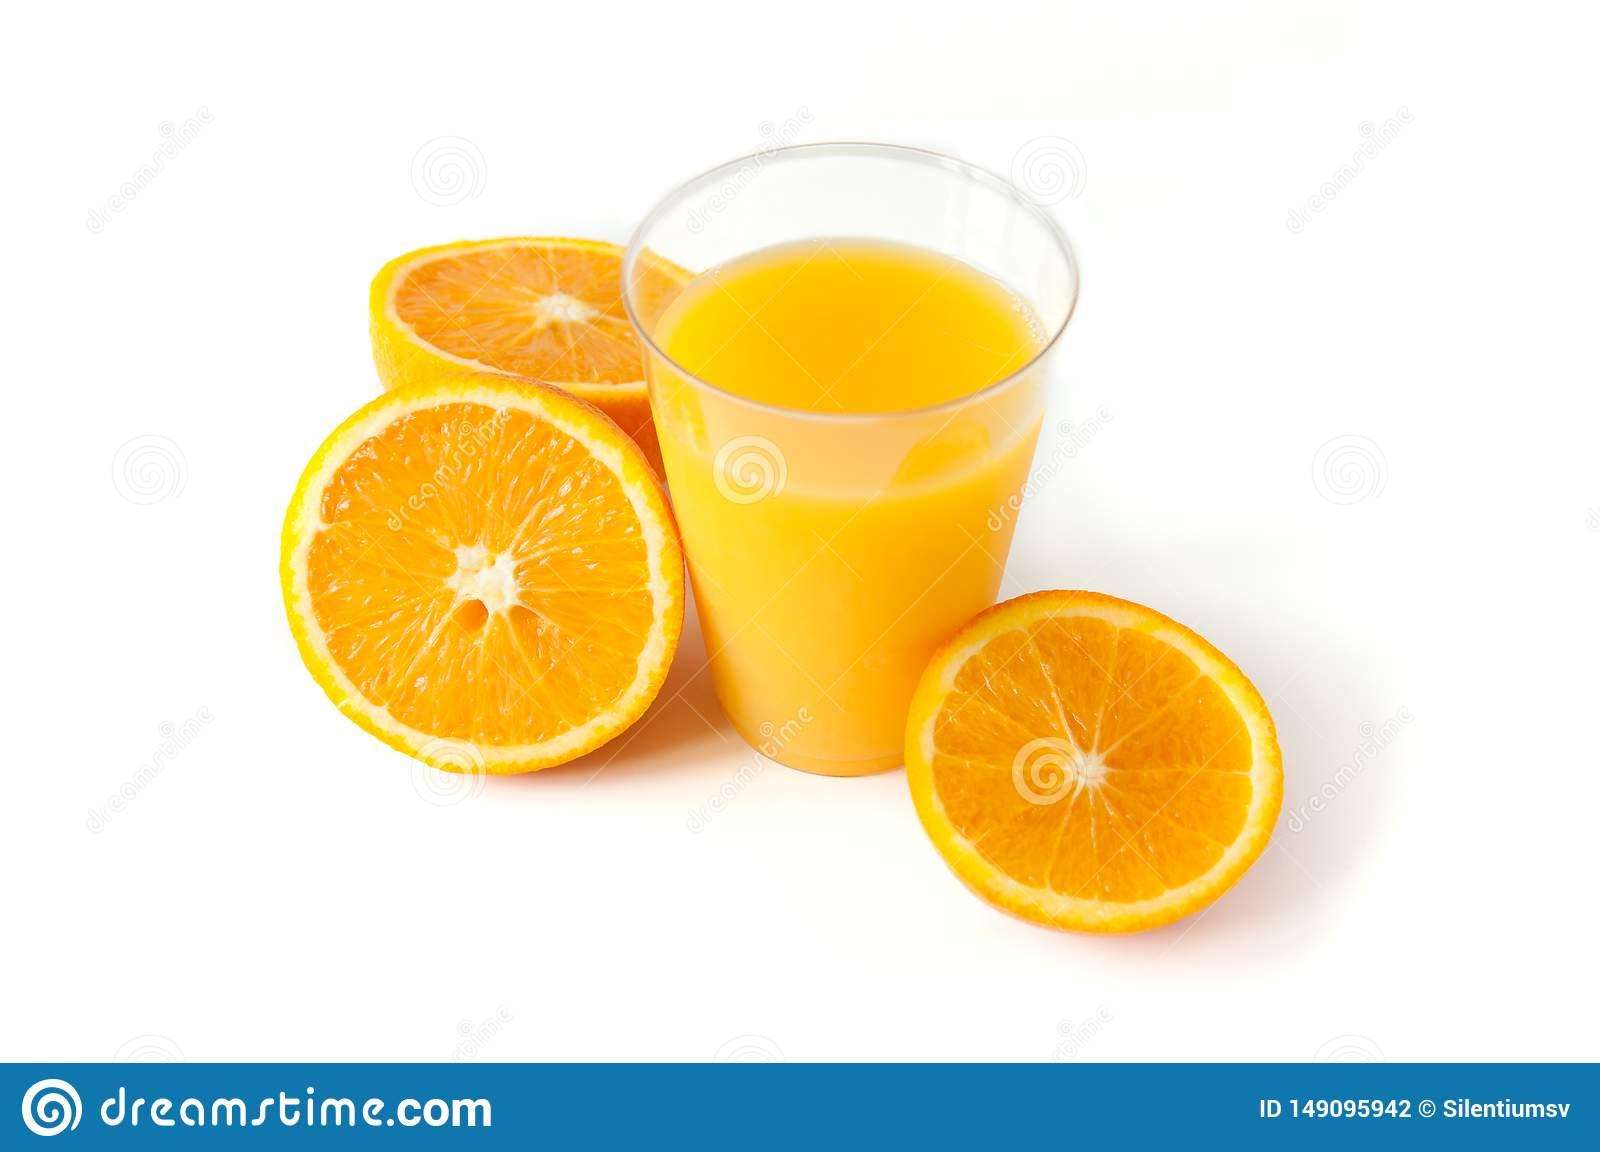 Fresh orange juice in a glass. Round orange slices on a white background. Citrus tropical fruit background. Bright food.